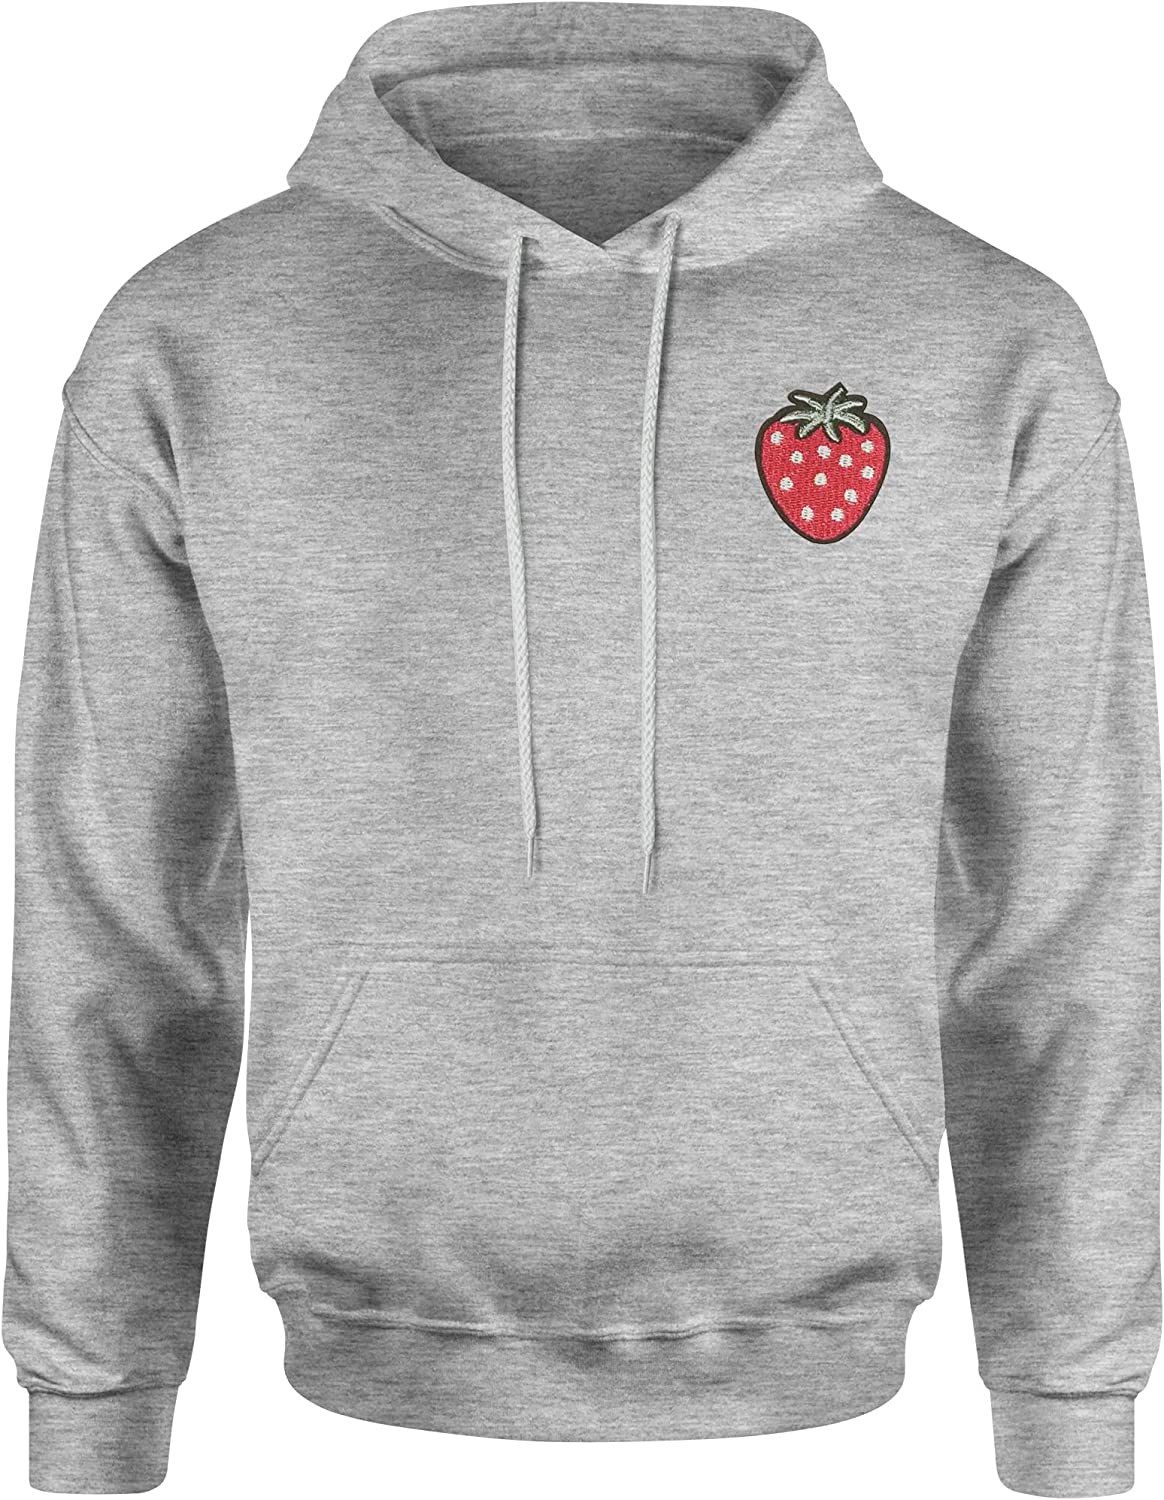 Unisex Adult Hoodie Pocket Print Expression Tees Embroidered Strawberry Patch